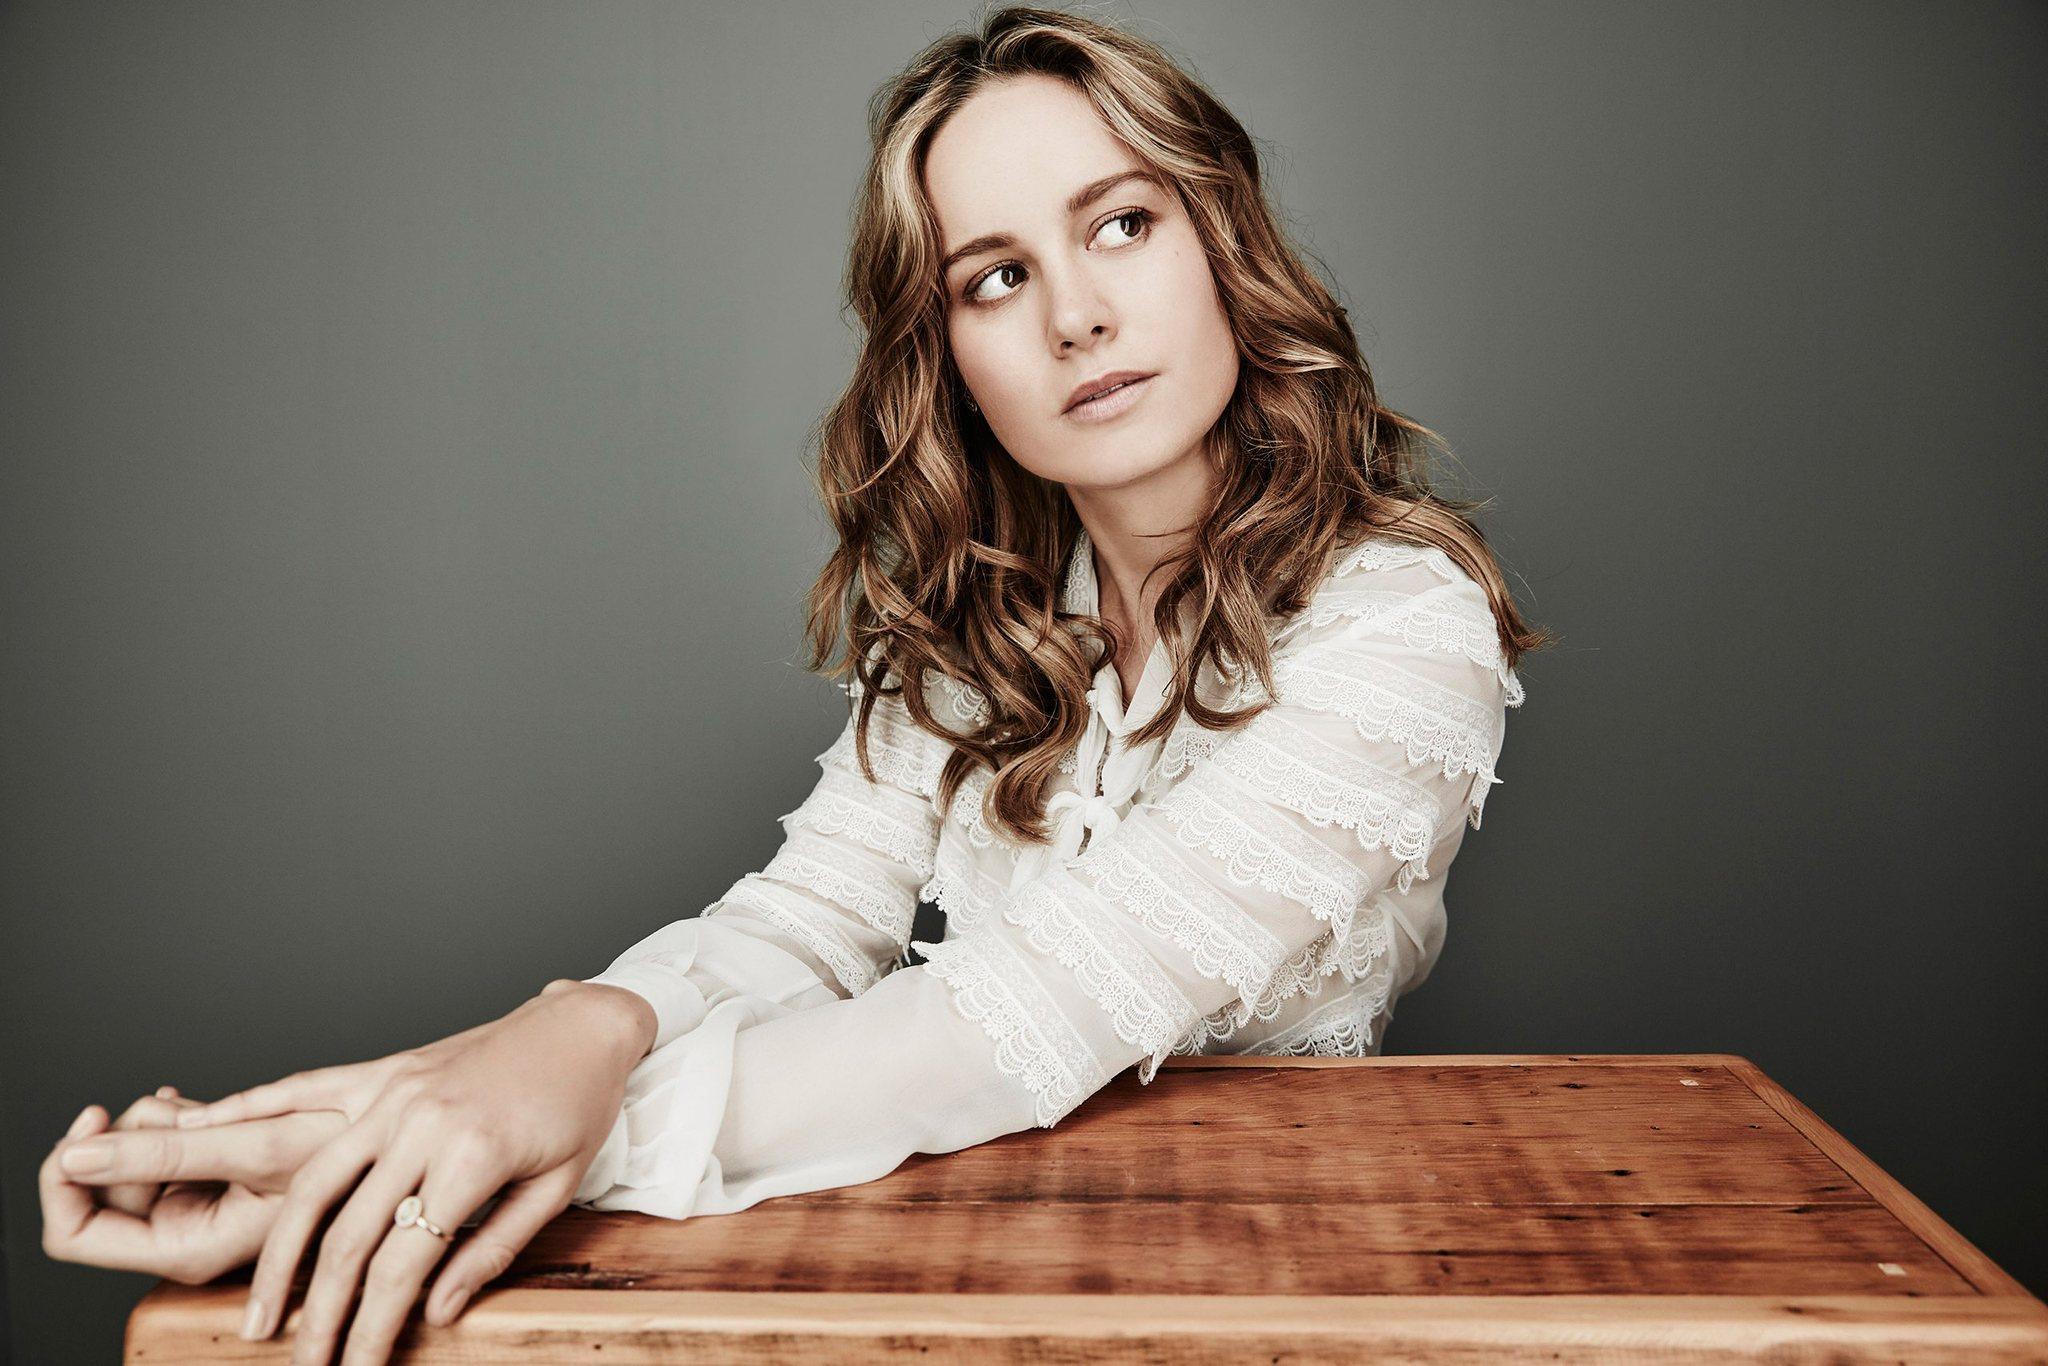 Brie Larson Wallpapers Hd